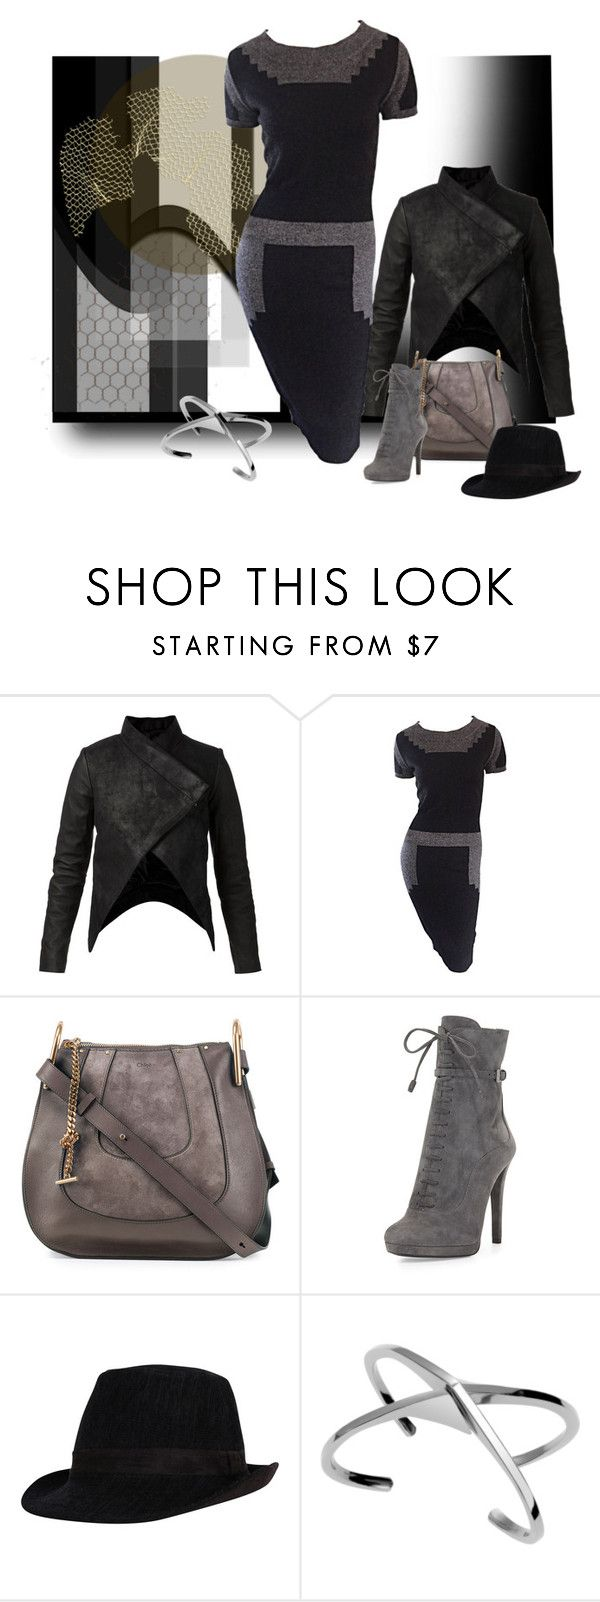 """""""Wired"""" by michelletheaflack ❤ liked on Polyvore featuring STRATEAS.CARLUCCI, Chloé, Prada, Bliss Lau and lightanddark"""